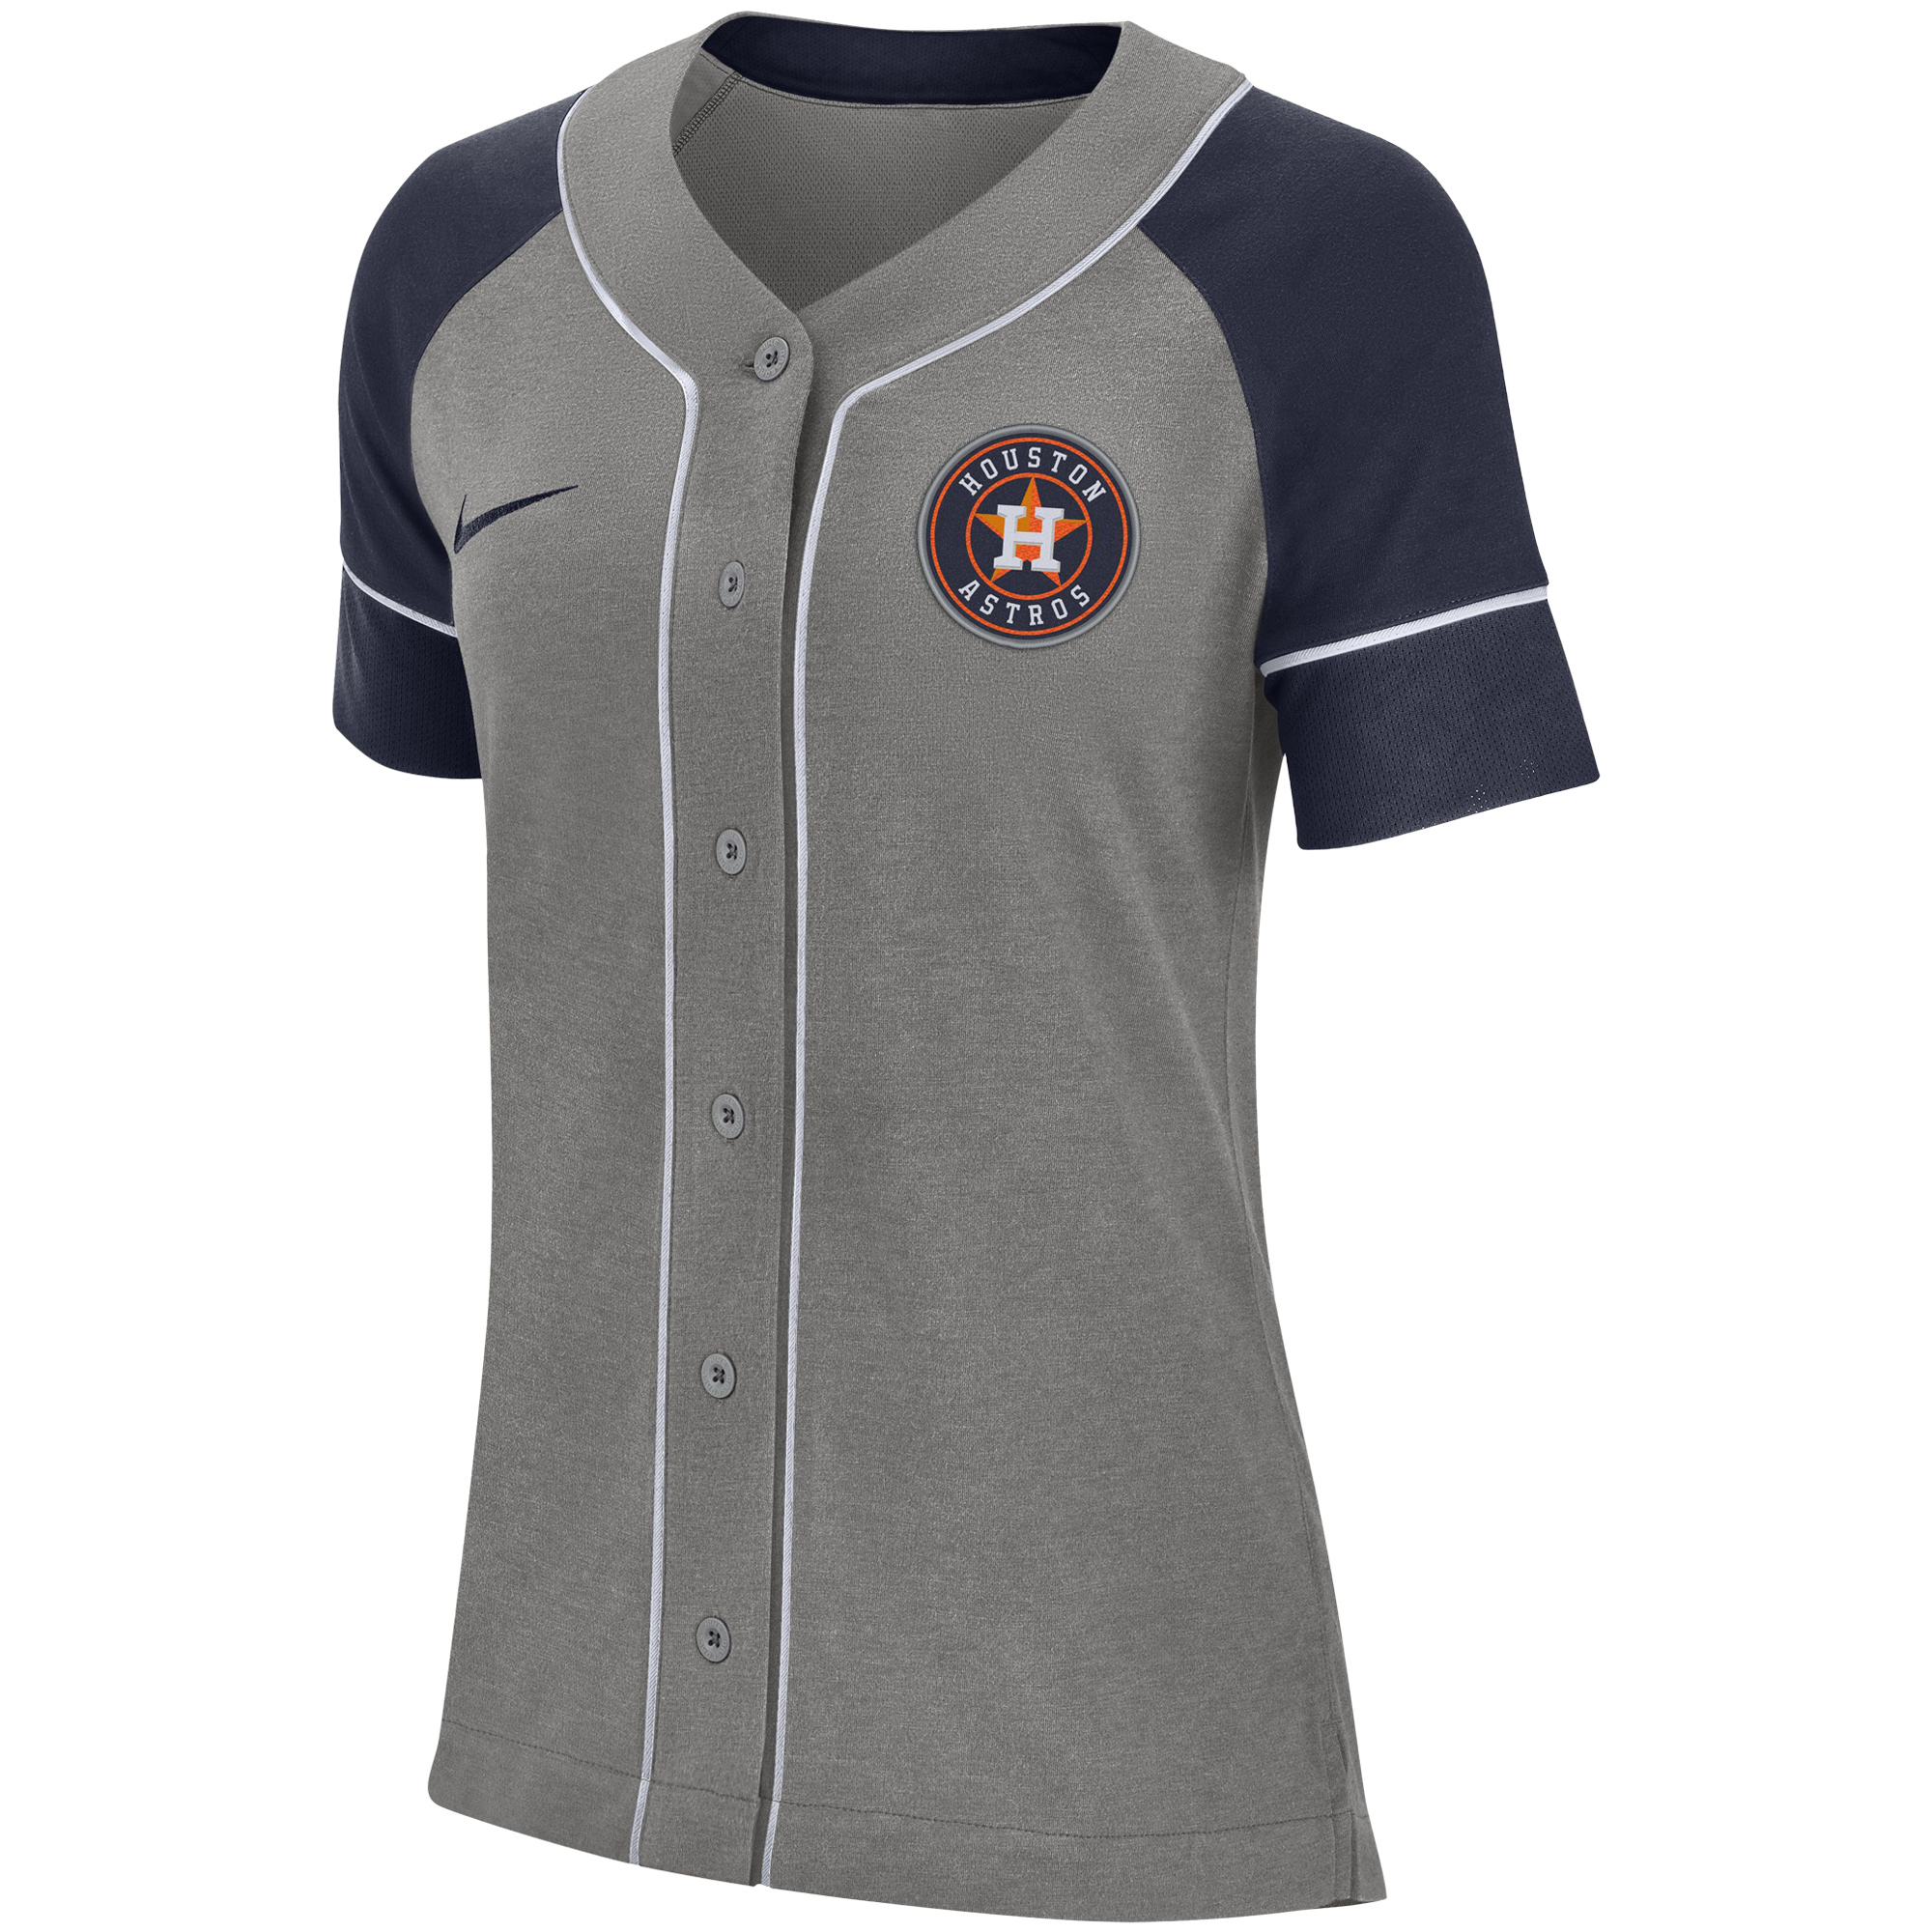 various colors 1a635 1f3db Houston Astros Nike Women's Classic Baseball Jersey - Gray